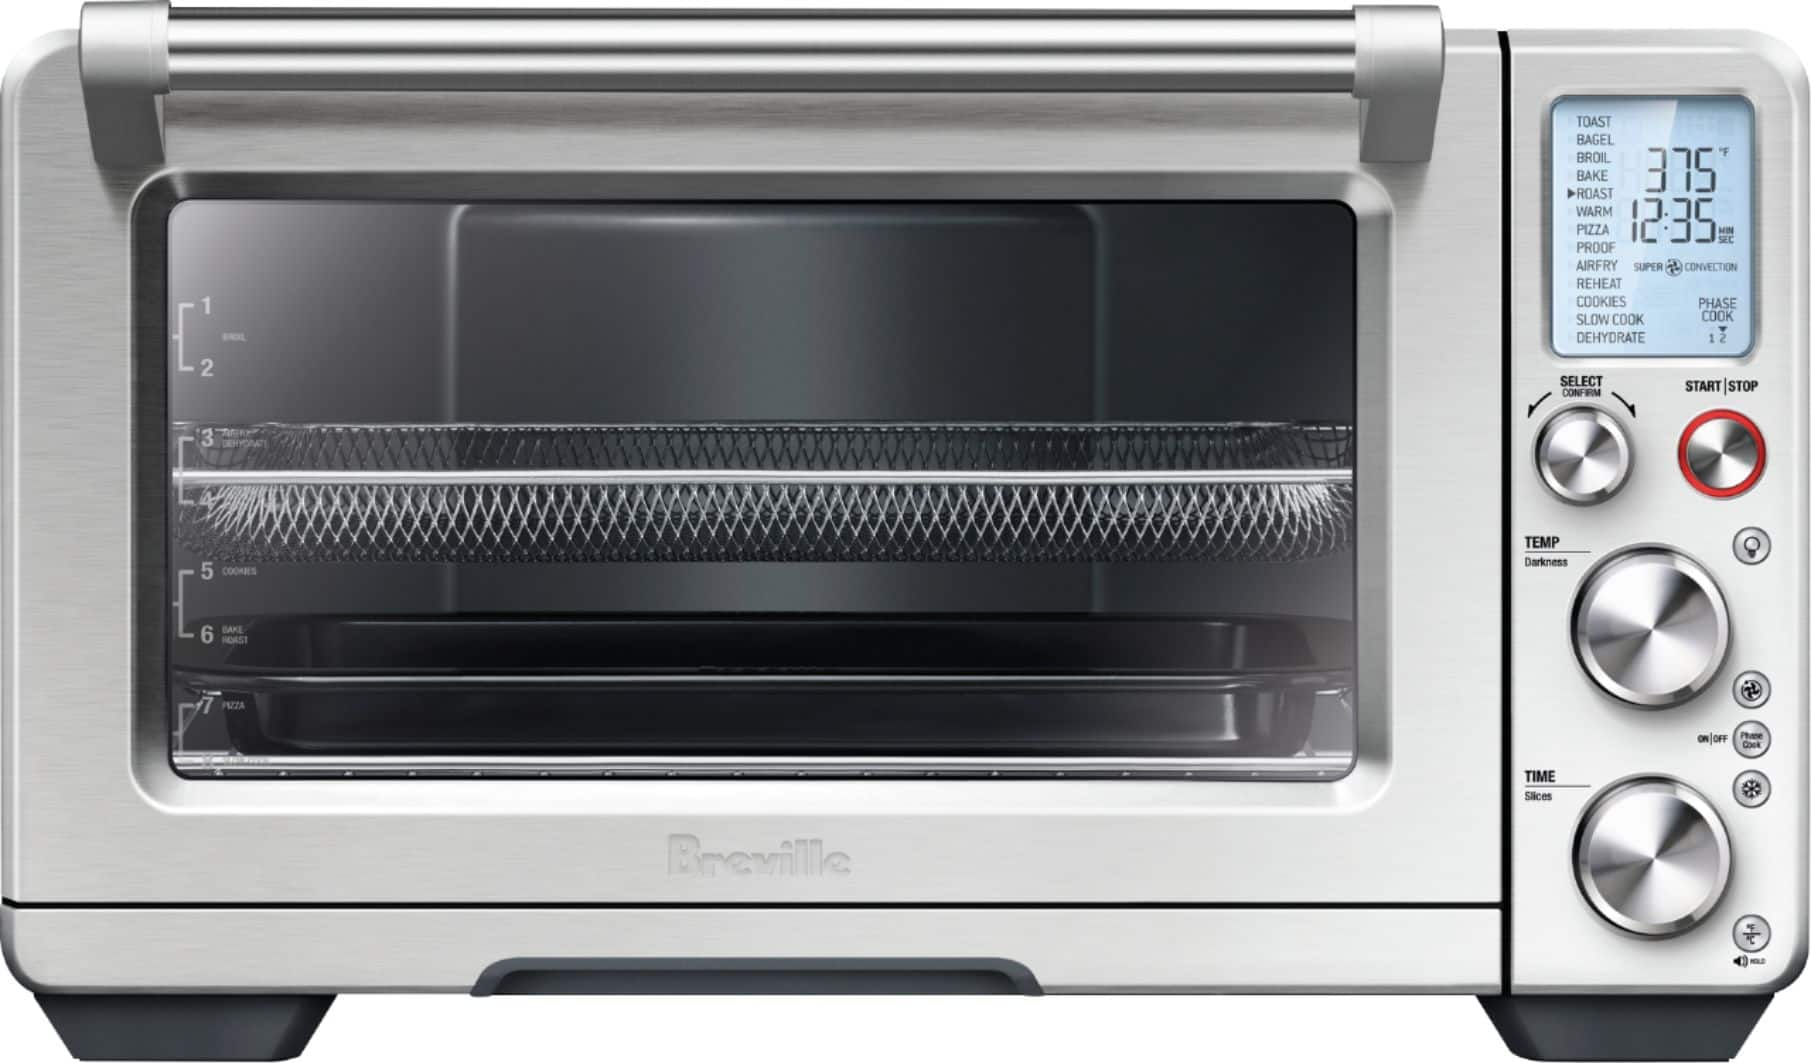 Breville Smart Oven 1800-Watt Air Convection Toaster Oven